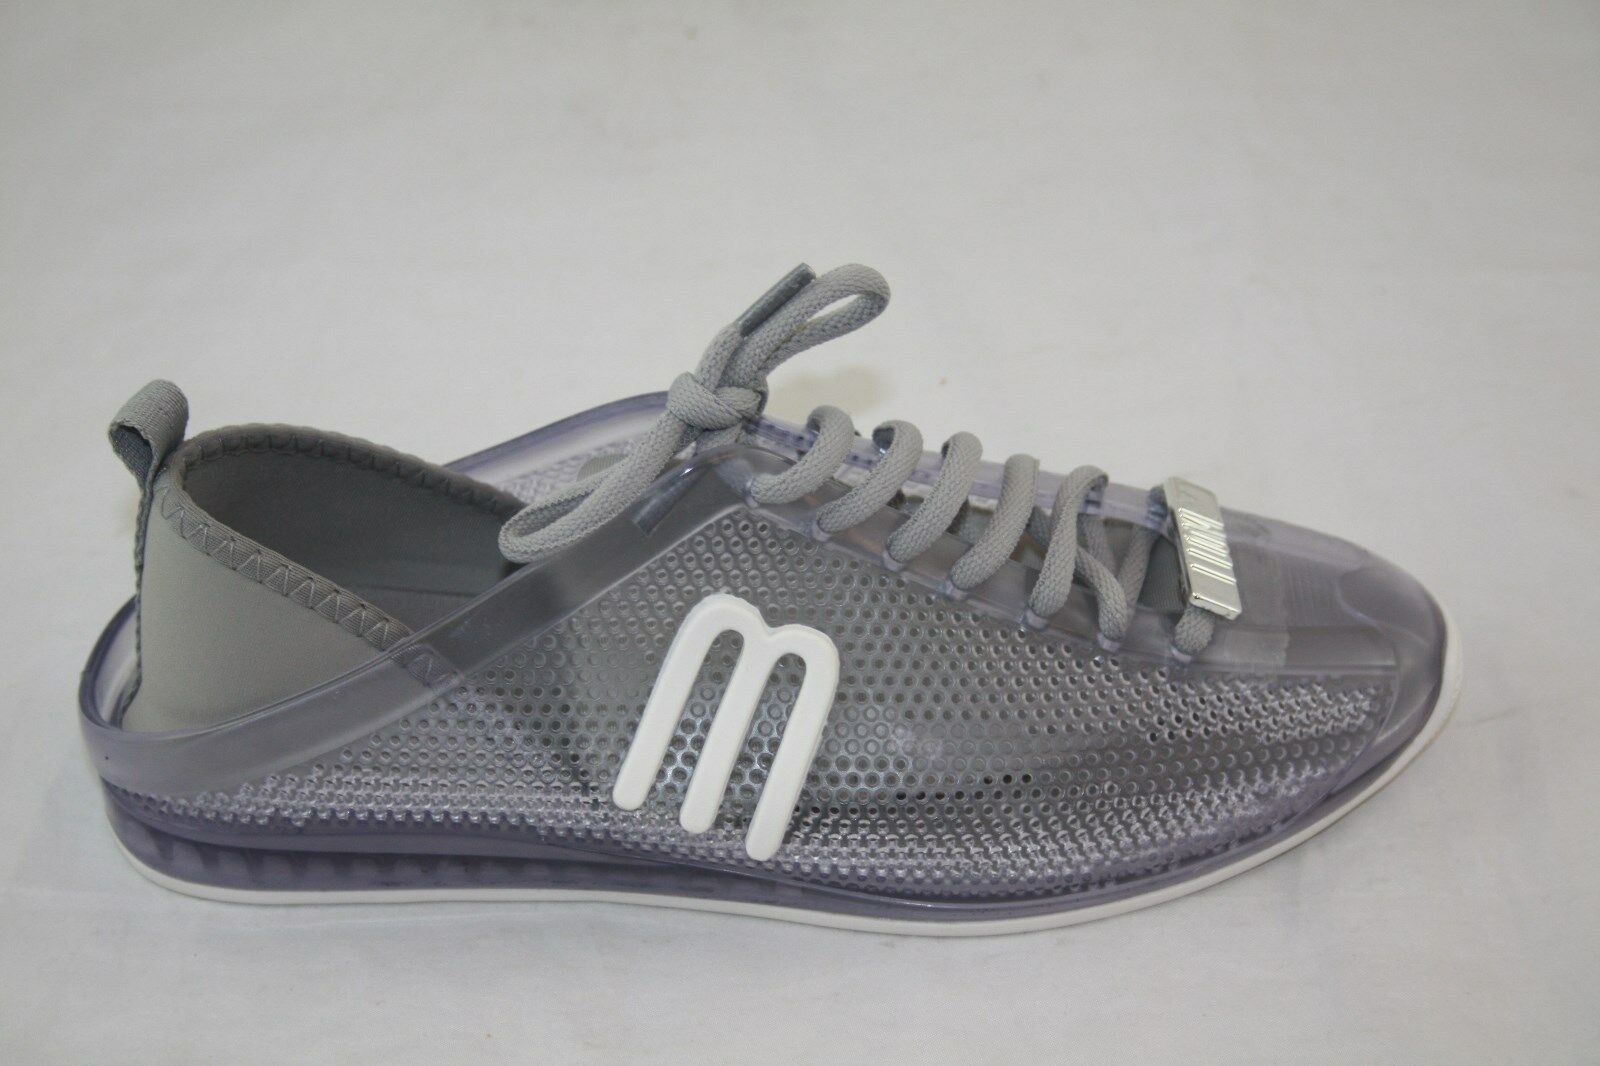 NEU WMN'S 31597 MELISSA LOVE SYSTEM NOW AD 51406 CLEAR GREY LACE UP